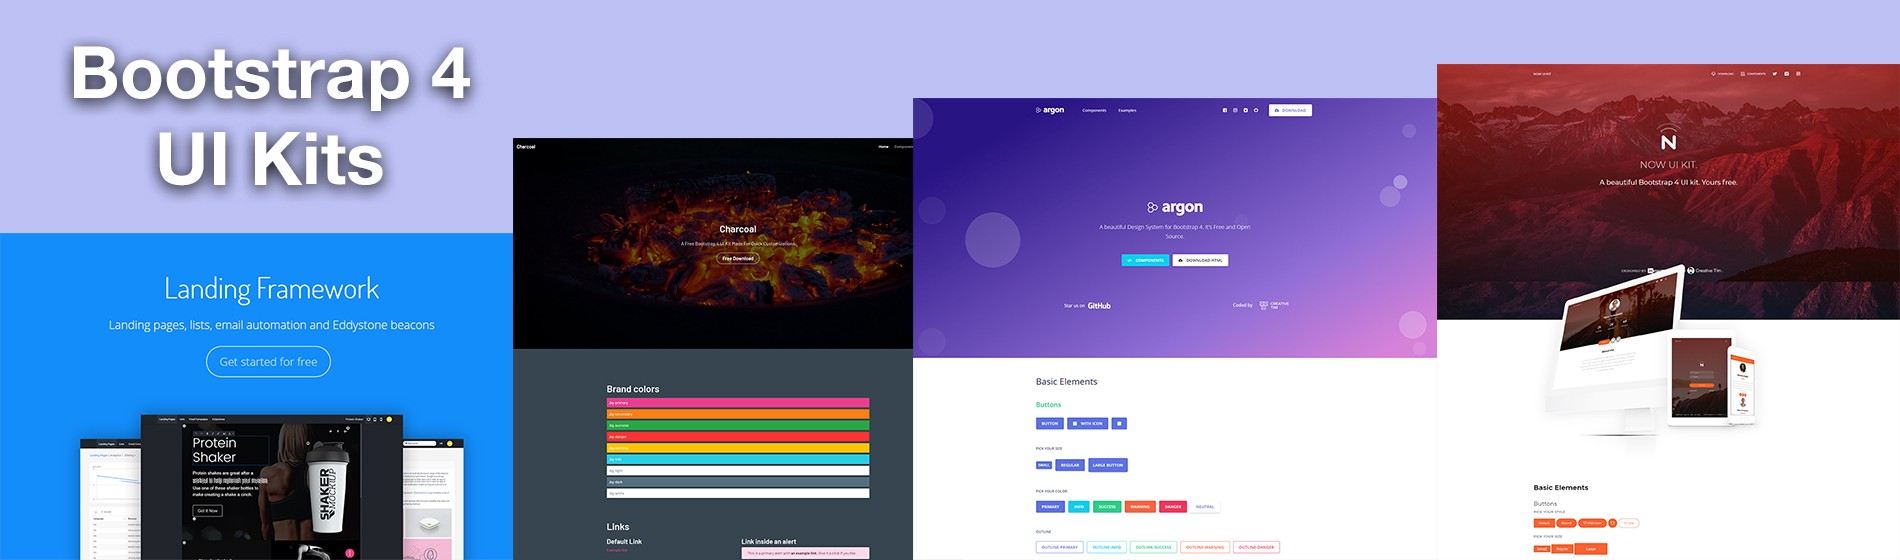 10 Best Free UI Kits Made With Bootstrap 4 - Theme Wagon - Medium